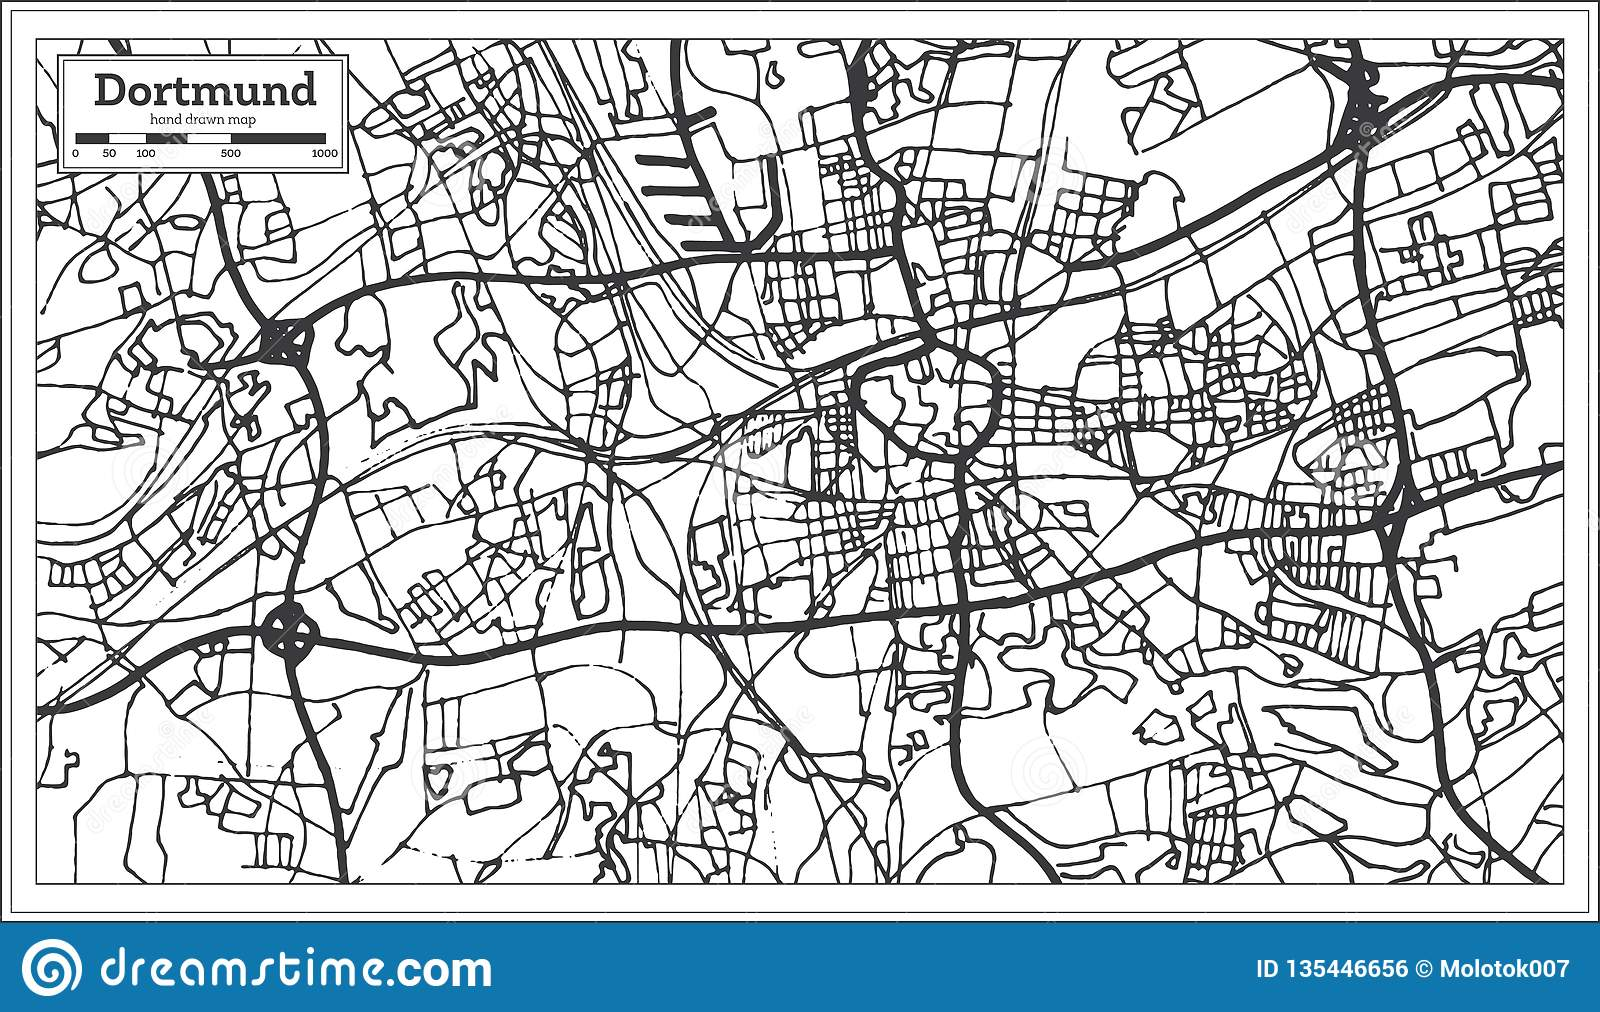 Dortmund On Map Of Germany.Dortmund Germany City Map In Retro Style Outline Map Stock Vector